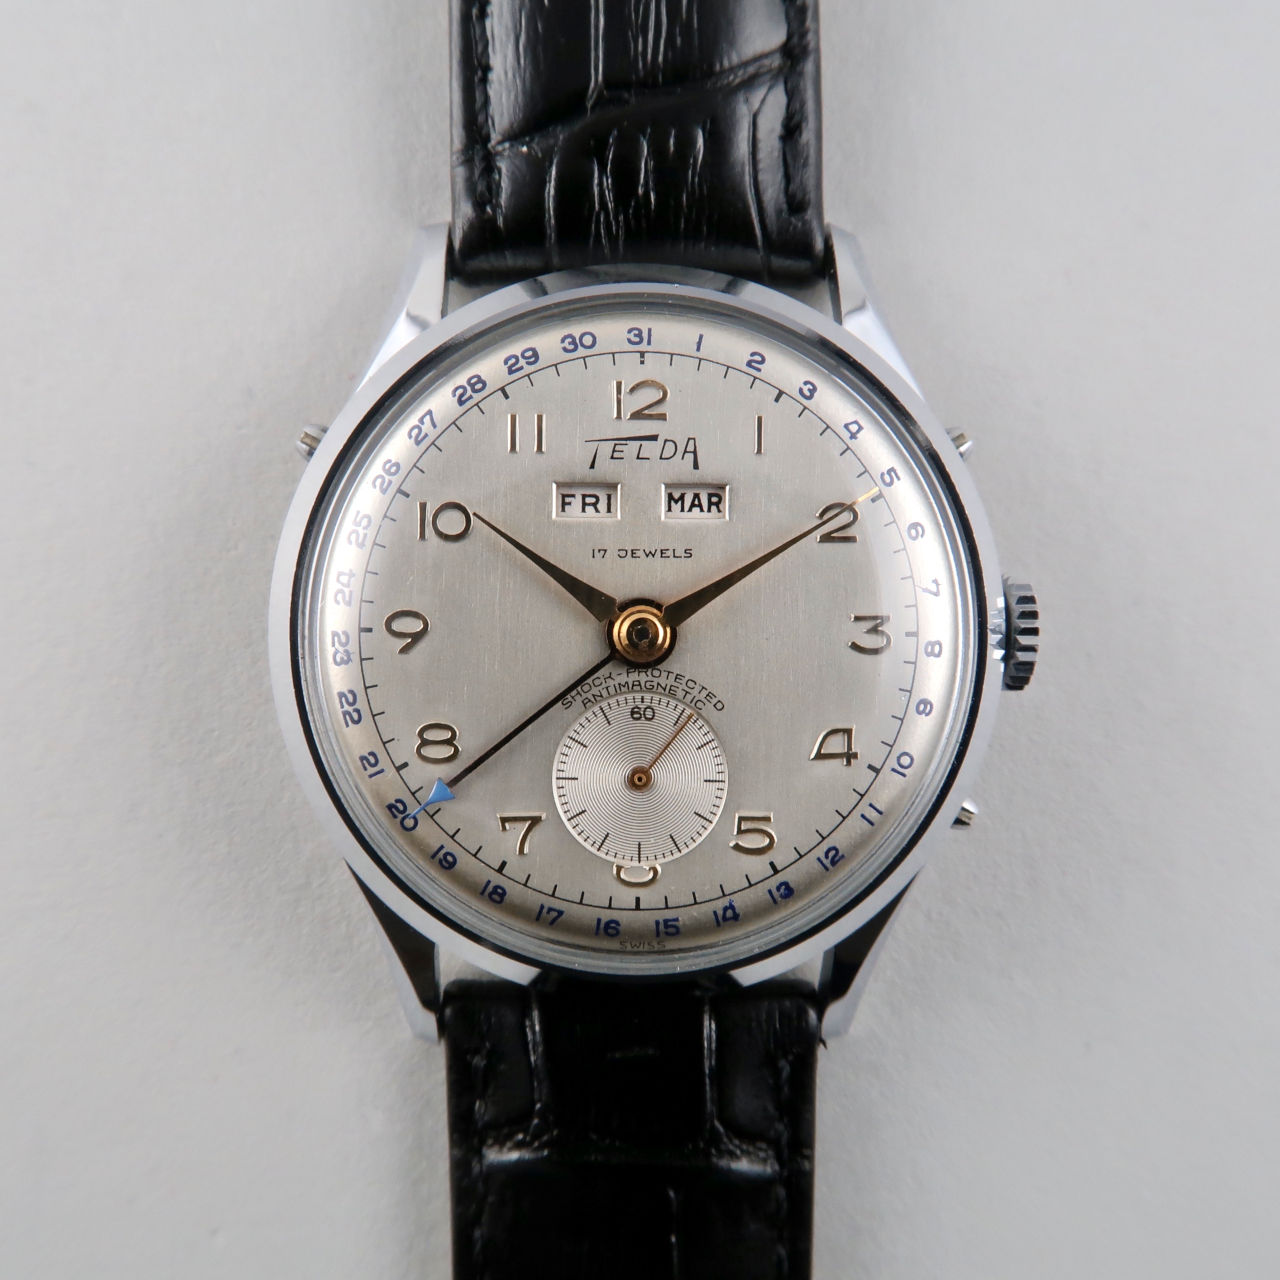 Telda circa 1950 | chrome & steel triple calendar wristwatch